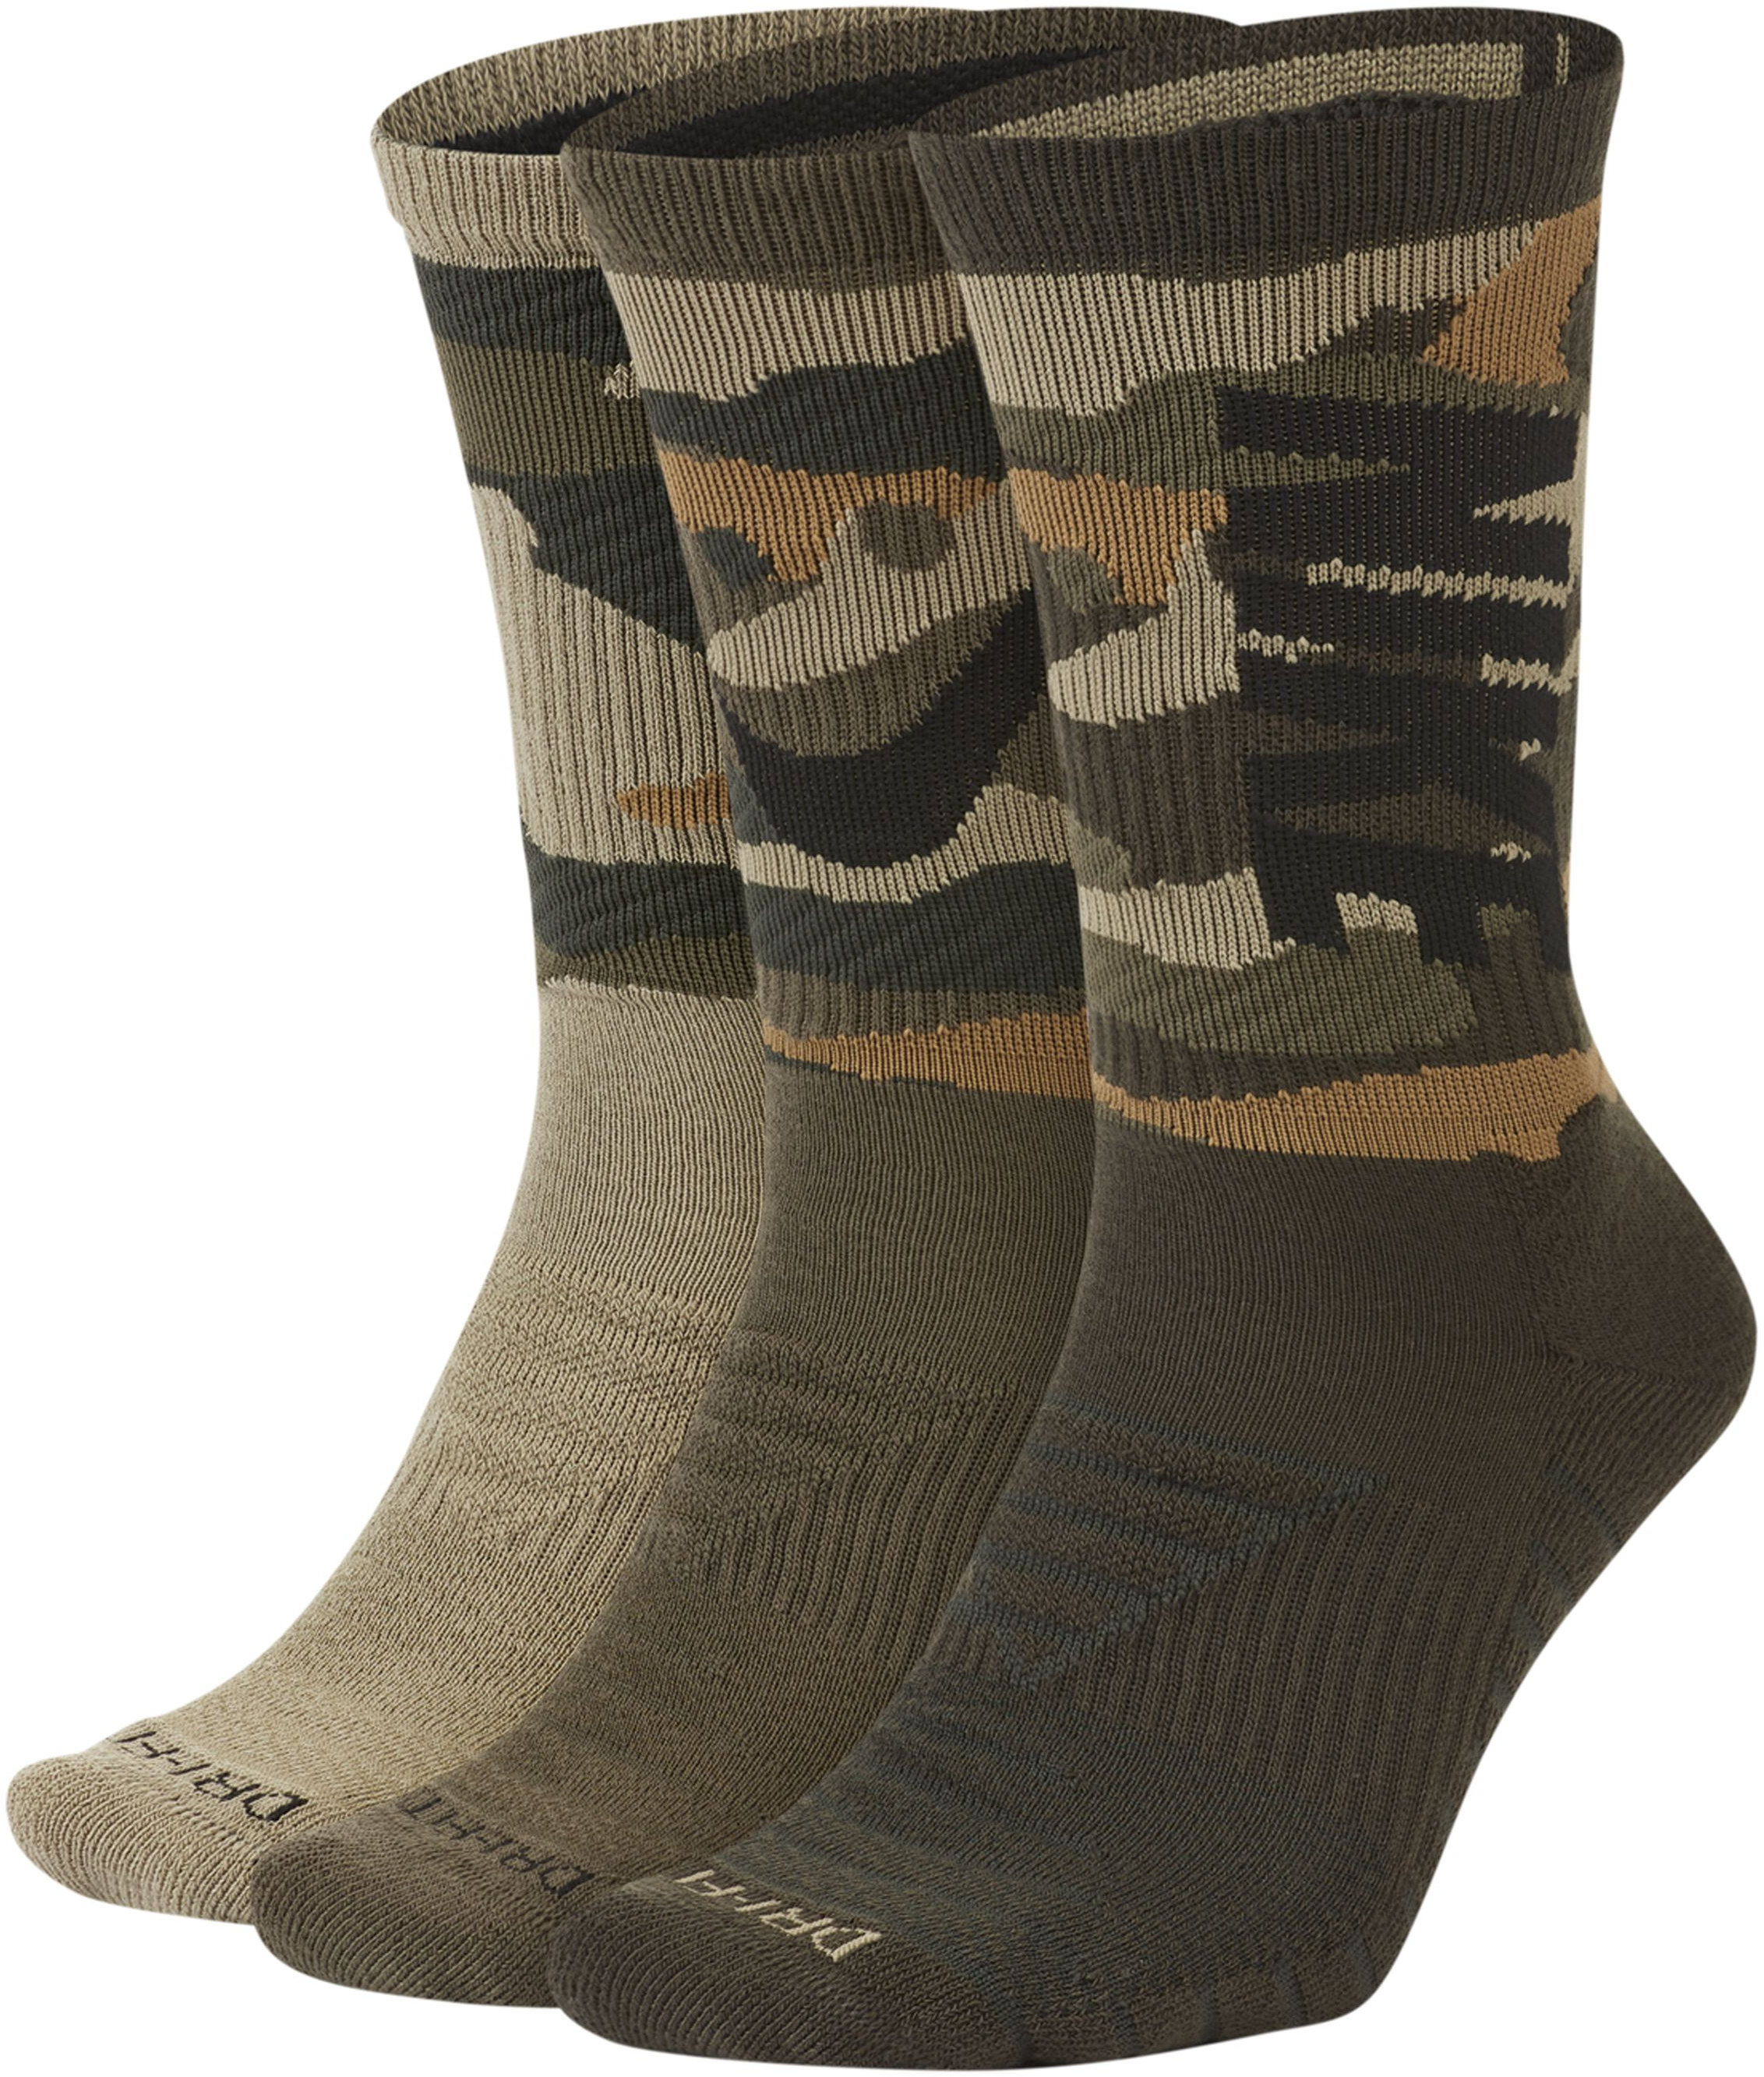 Everyday Max Cush Crew Socks 3-Pair Pack Nike